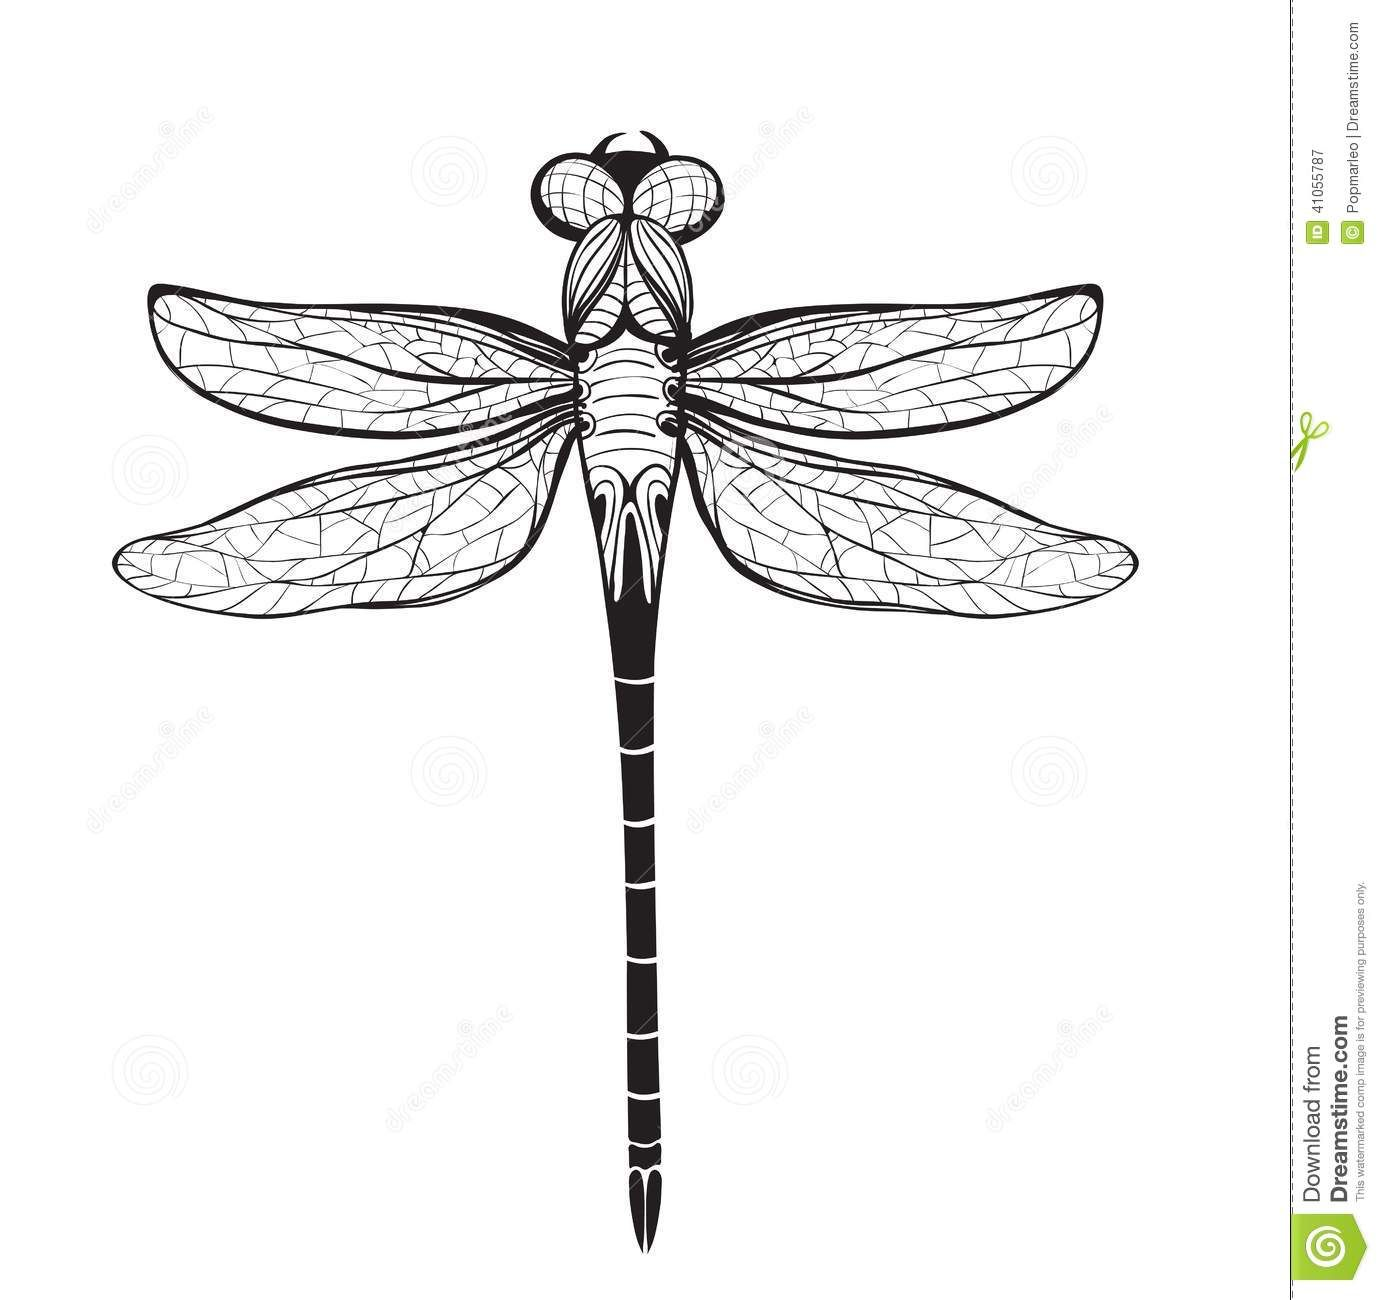 Dragonfly Insect Black Inky Drawing